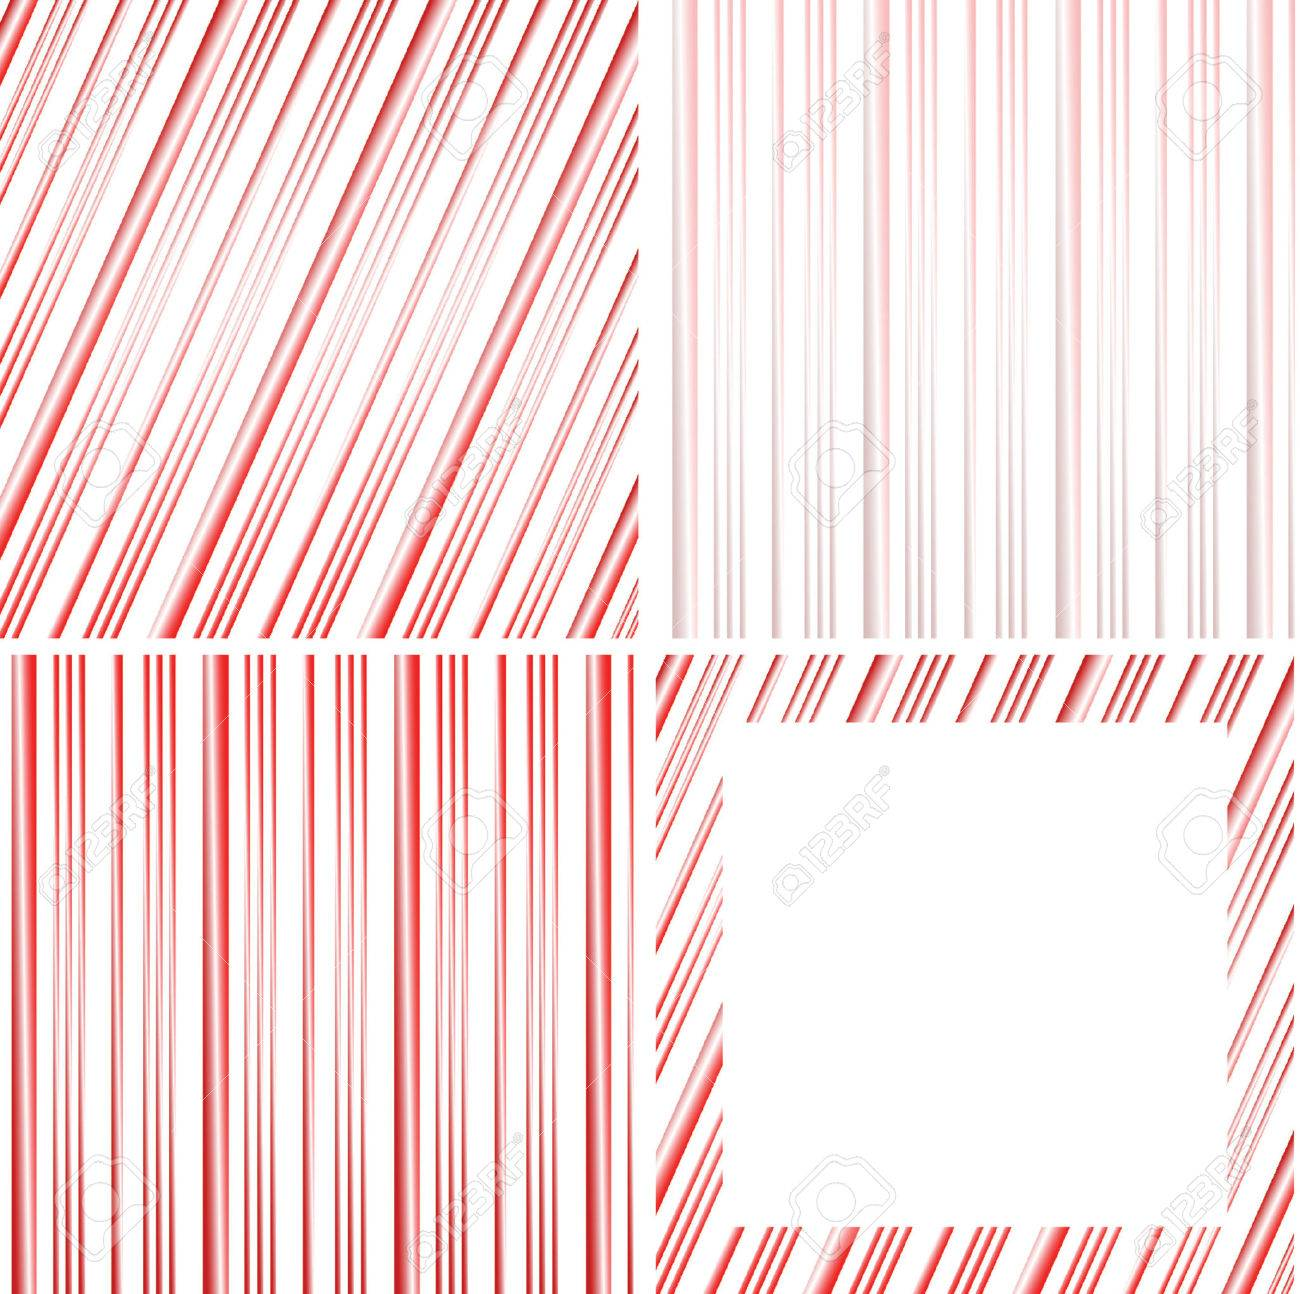 Candy Cane Stripped Background Wallpaper Stock Vector